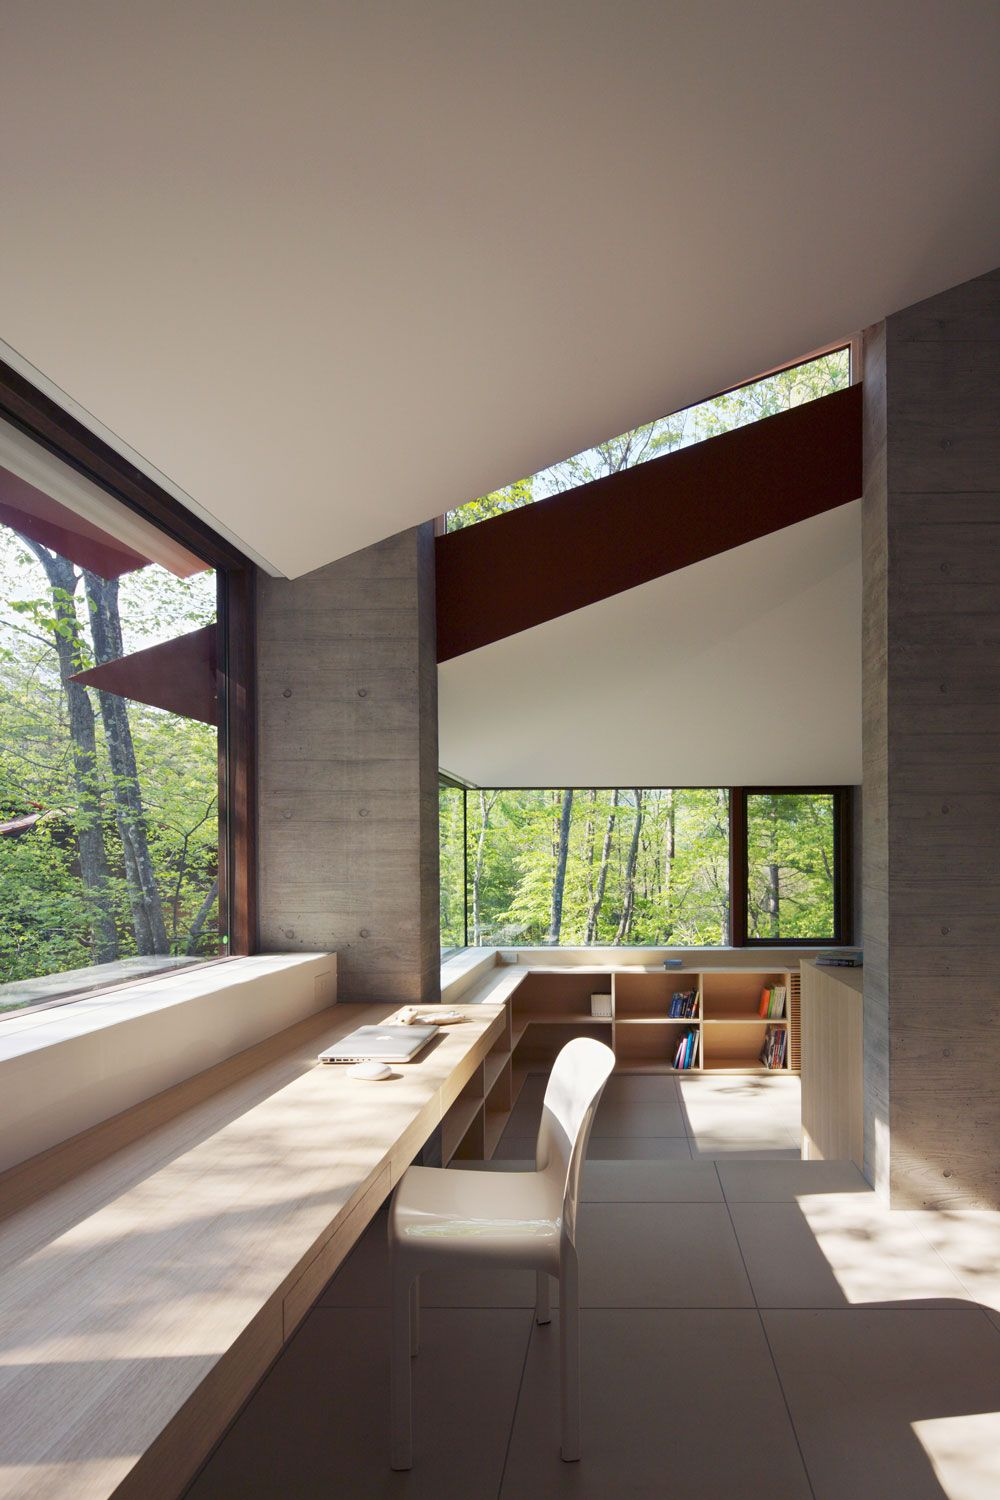 Home Office, Hilltop Home in Karuizawa, Japan